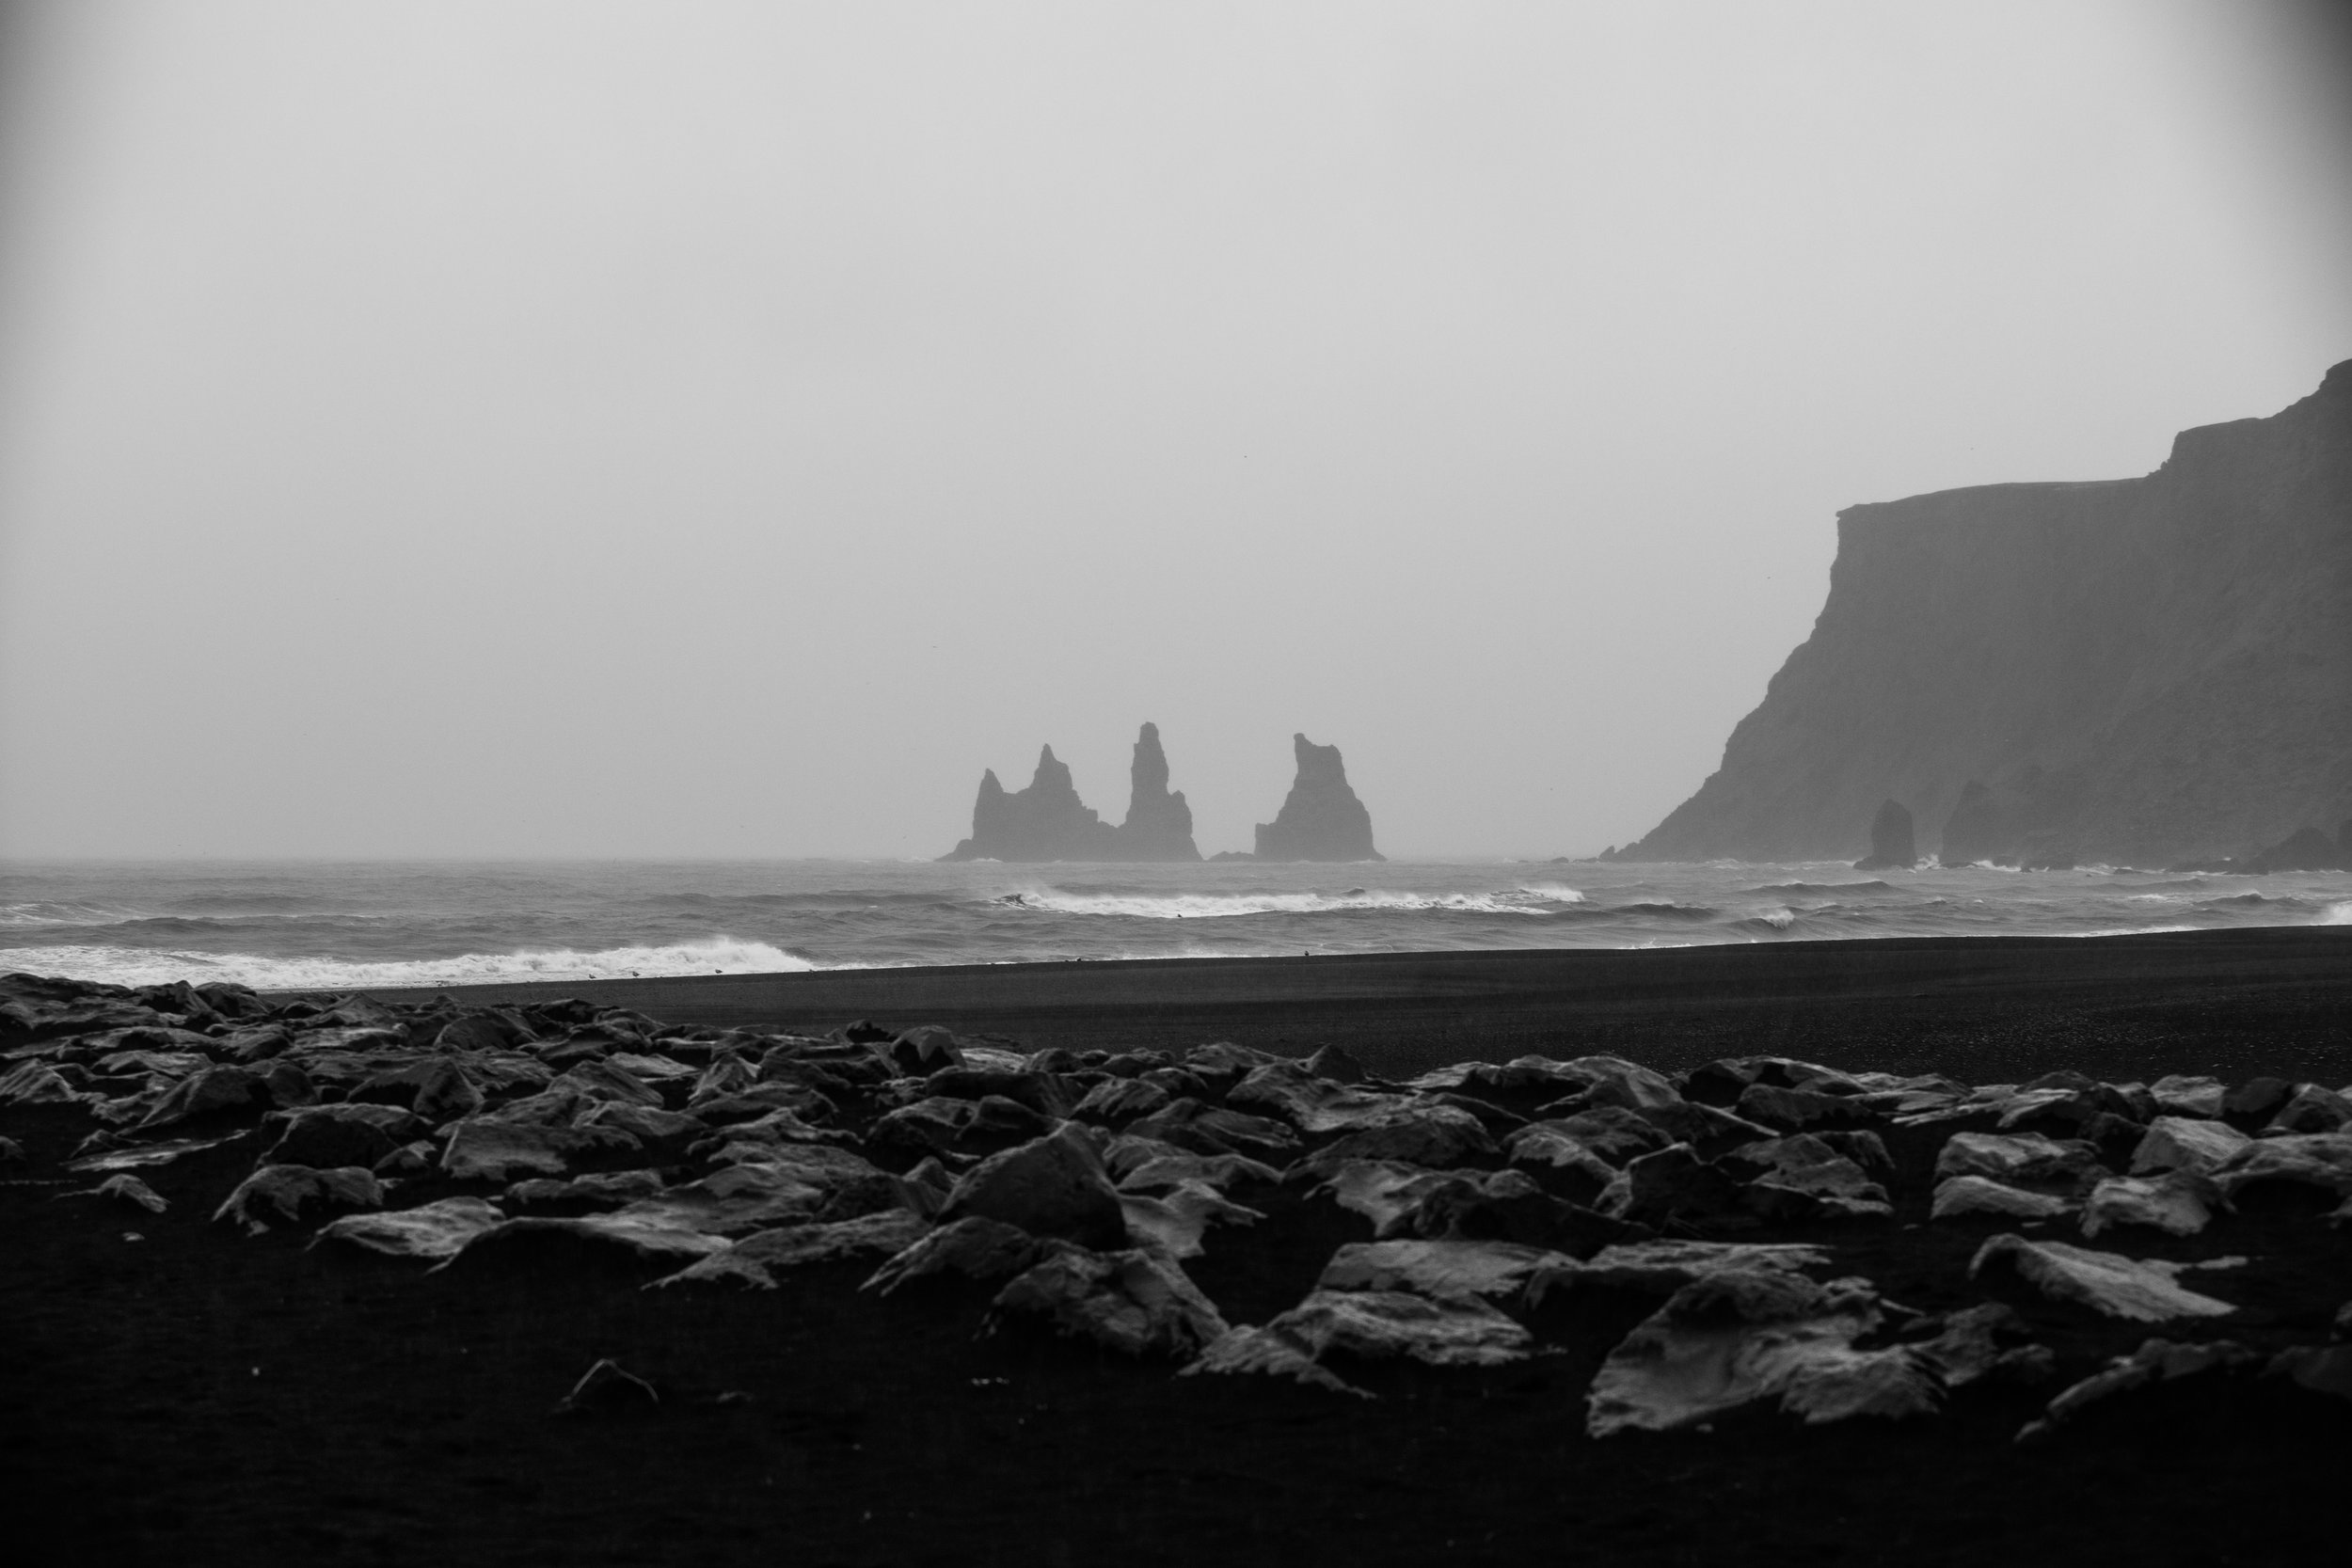 The small coastal town of Vik met us with heavy rain, the air smelling faintly of wet ash. Wind made salt crystals settle in any crevices not tightly wound in rain gear. The towers in the distance are named Reynisdrangar; formed of ancient basalt deposits in the area. Nordic folklore says two trolls tried to drag a ship to land one murky night, but were turned to stone when sunlight hit them, trapping them here indefinitely. The entirety of the beach is a fine black sand chilly paradise from the vast swathes of volcanic ash spilled at the edges of much the Icelandic coasts.